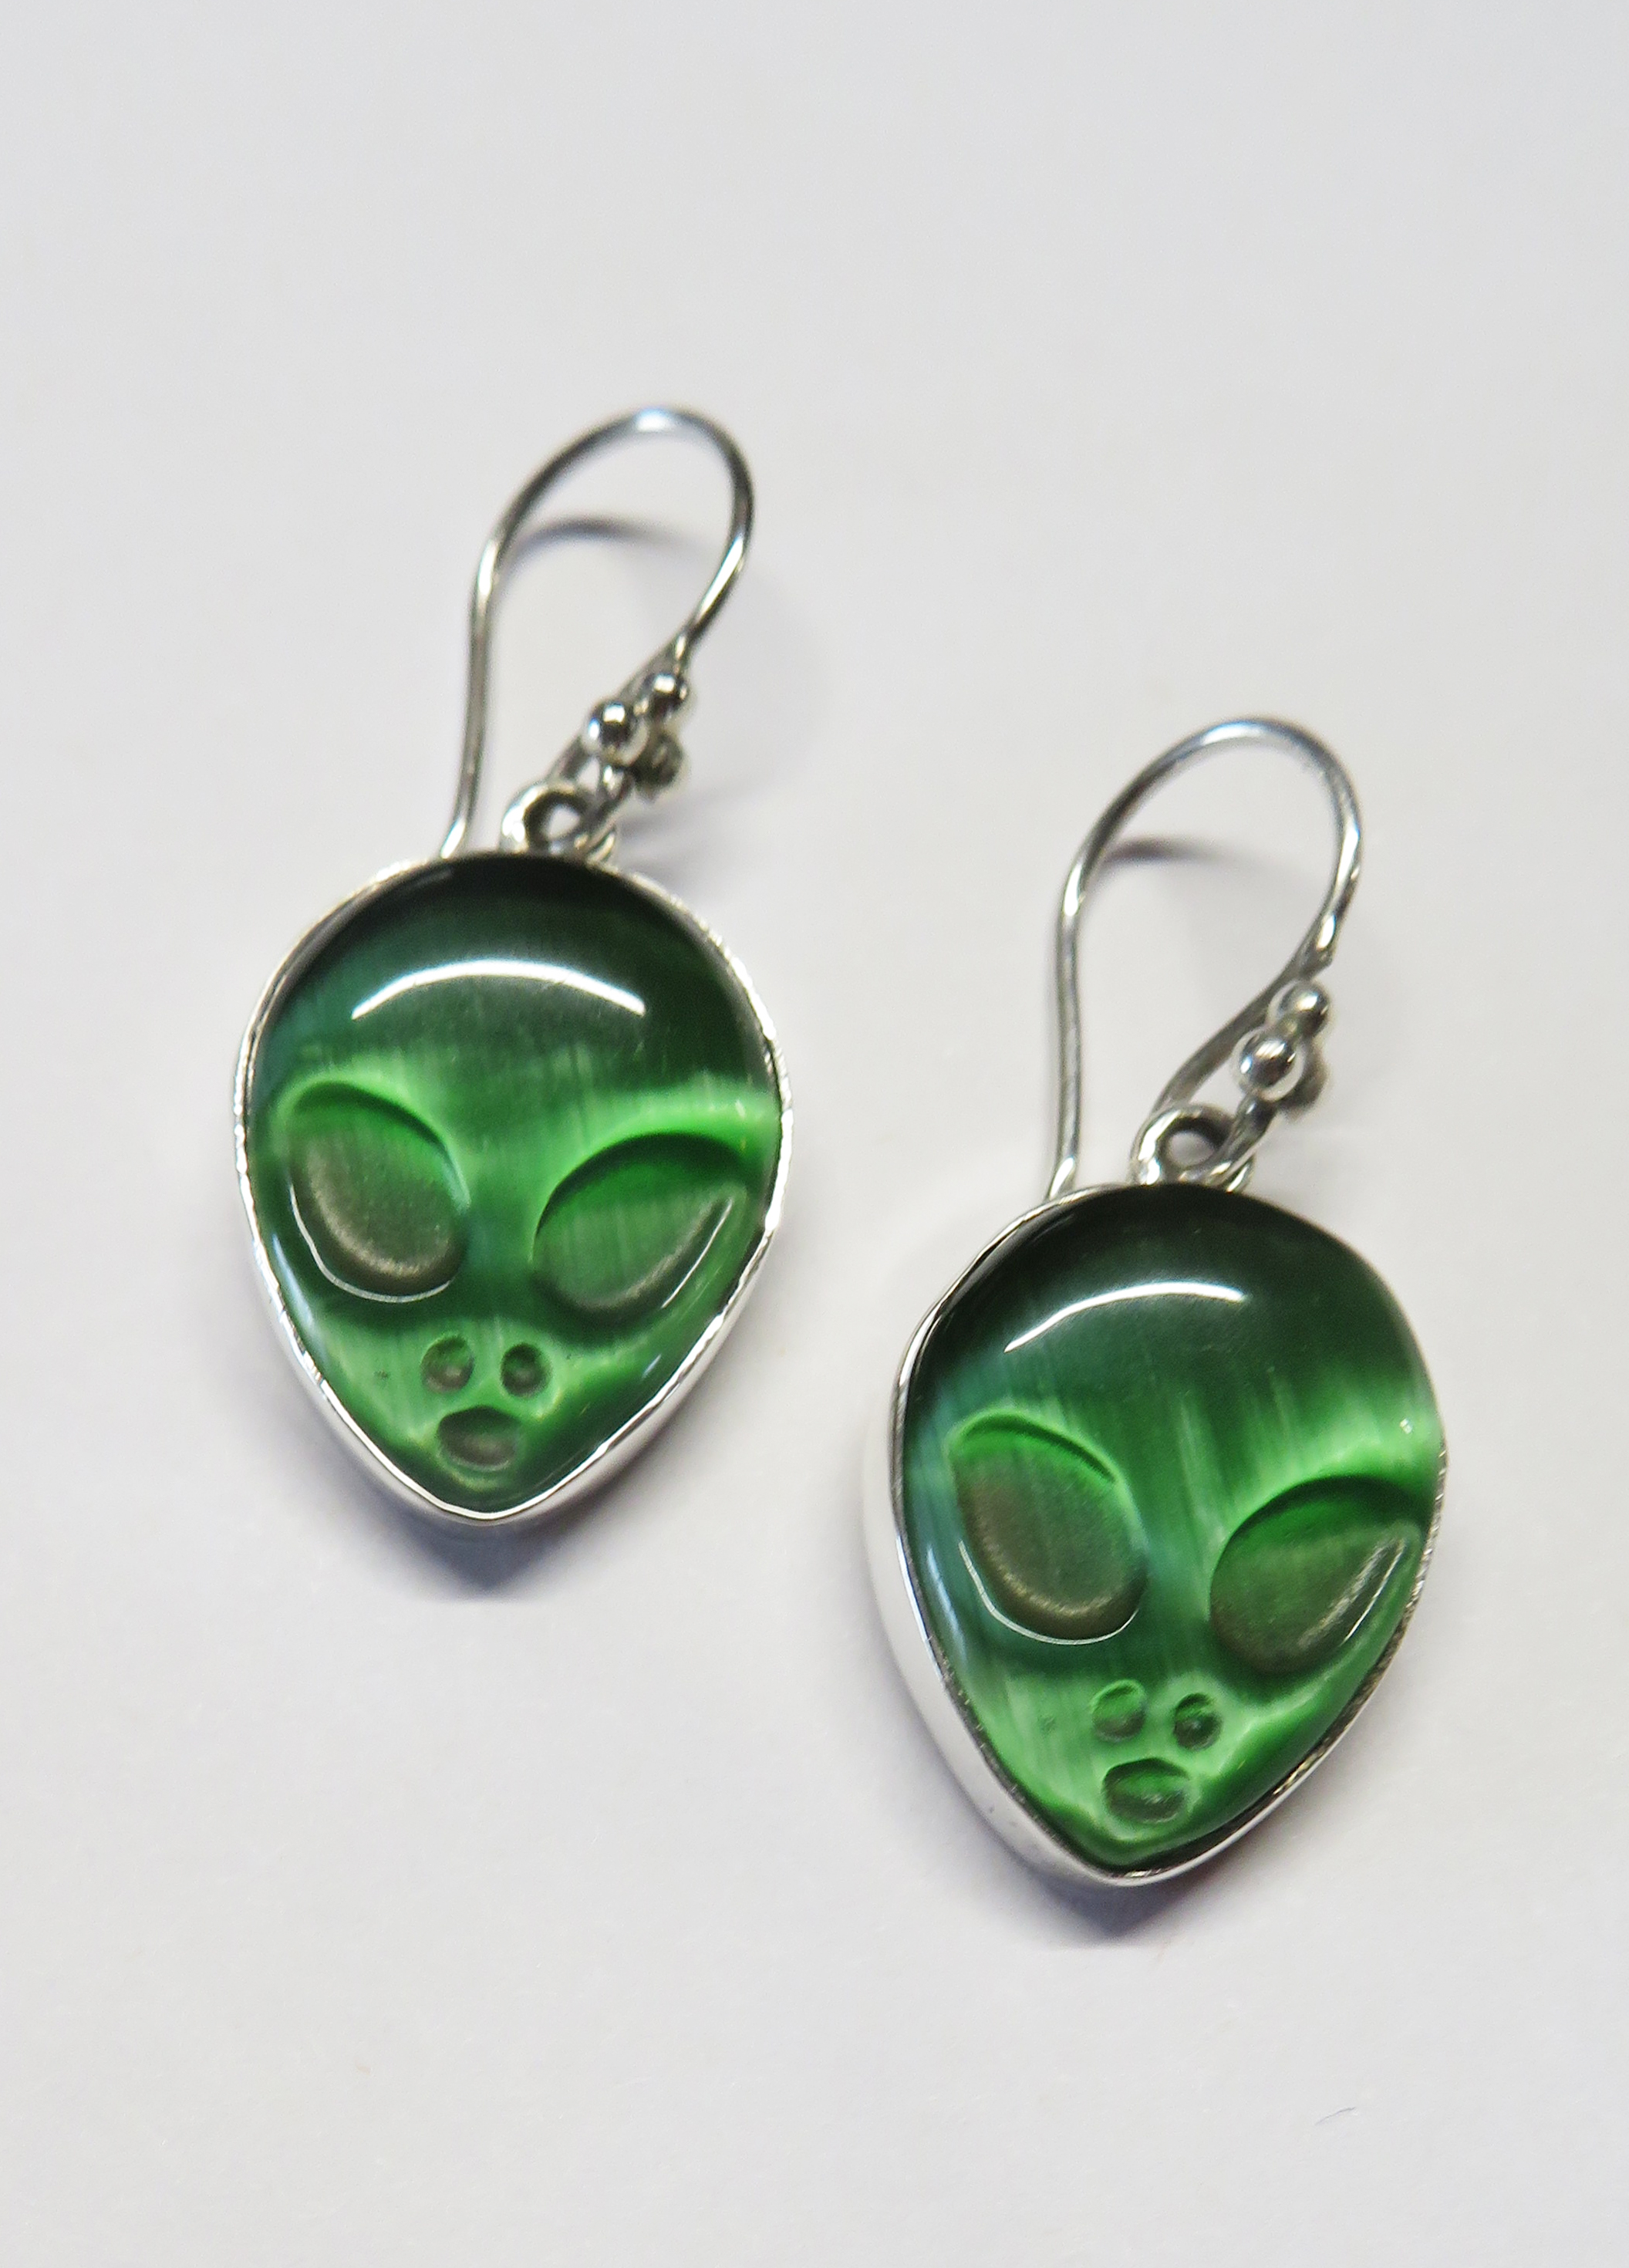 Alien Head Earrings – EB1ER